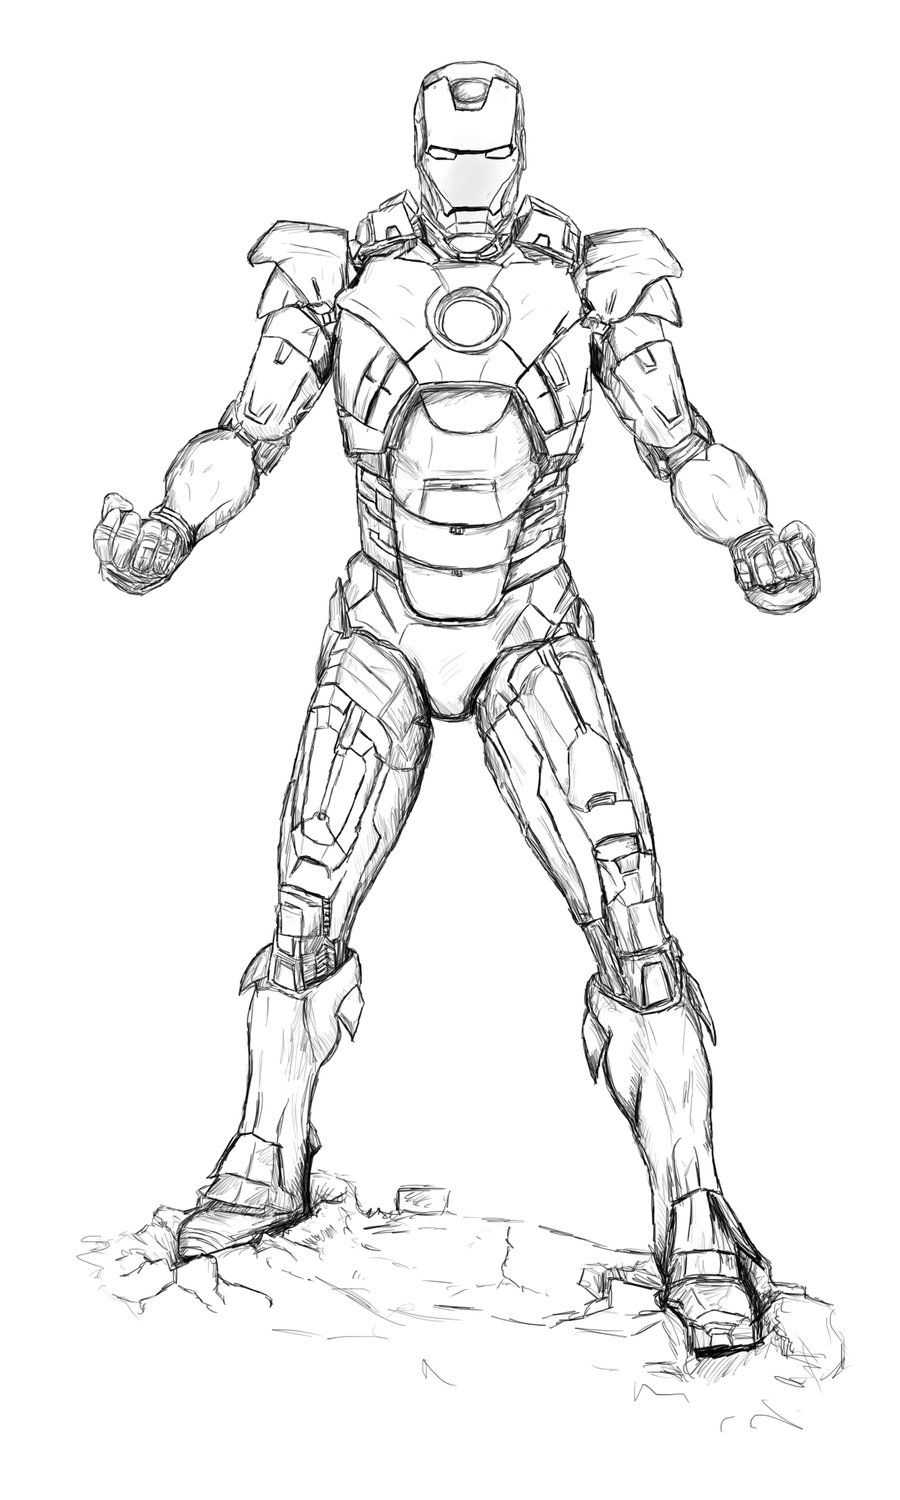 printable iron man coloring pages for fun | DIYs | Pinterest | Iron ...